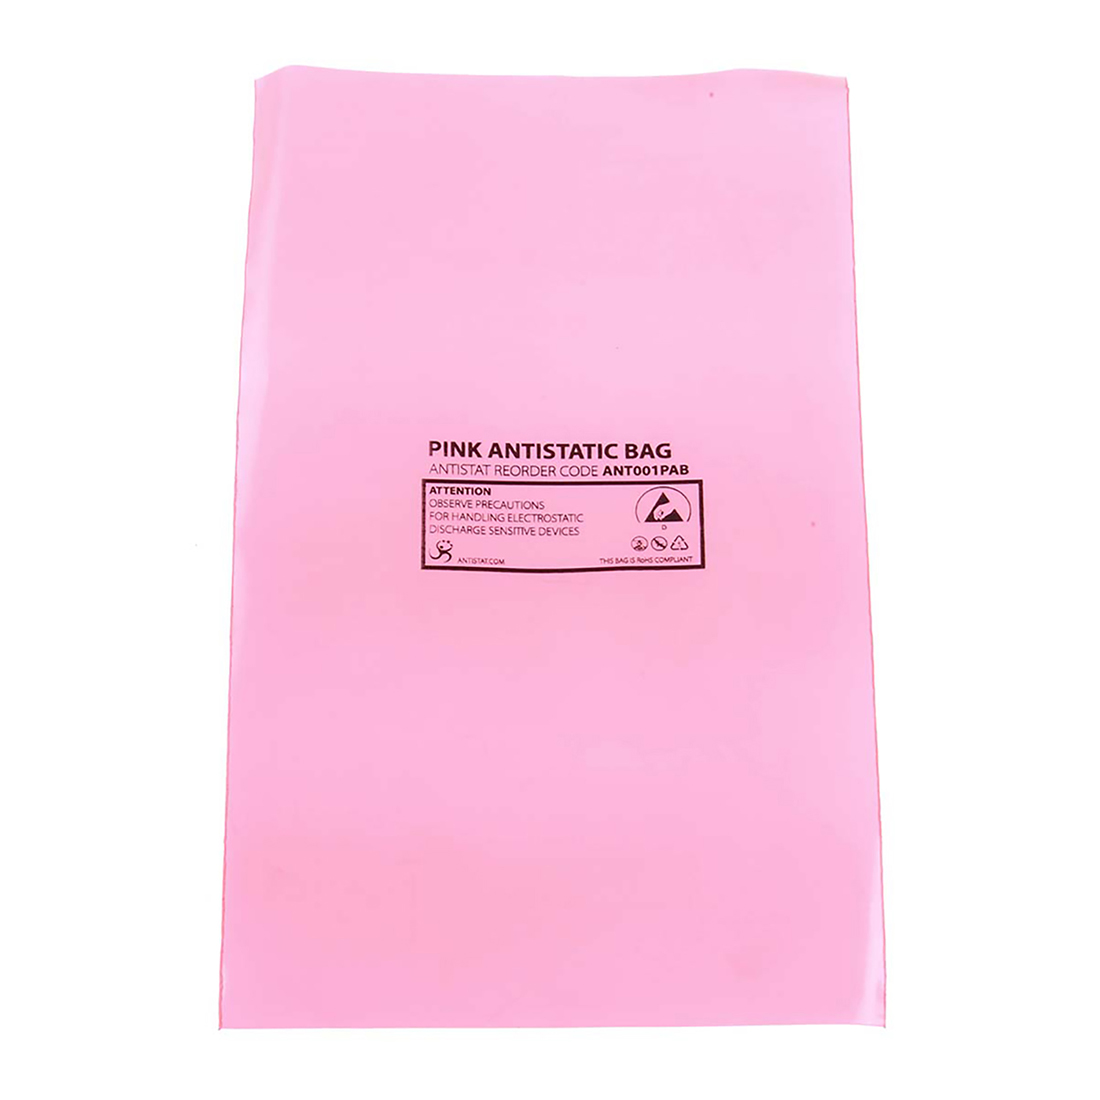 Antistatic pink bag,75x125mm - 100 Pack